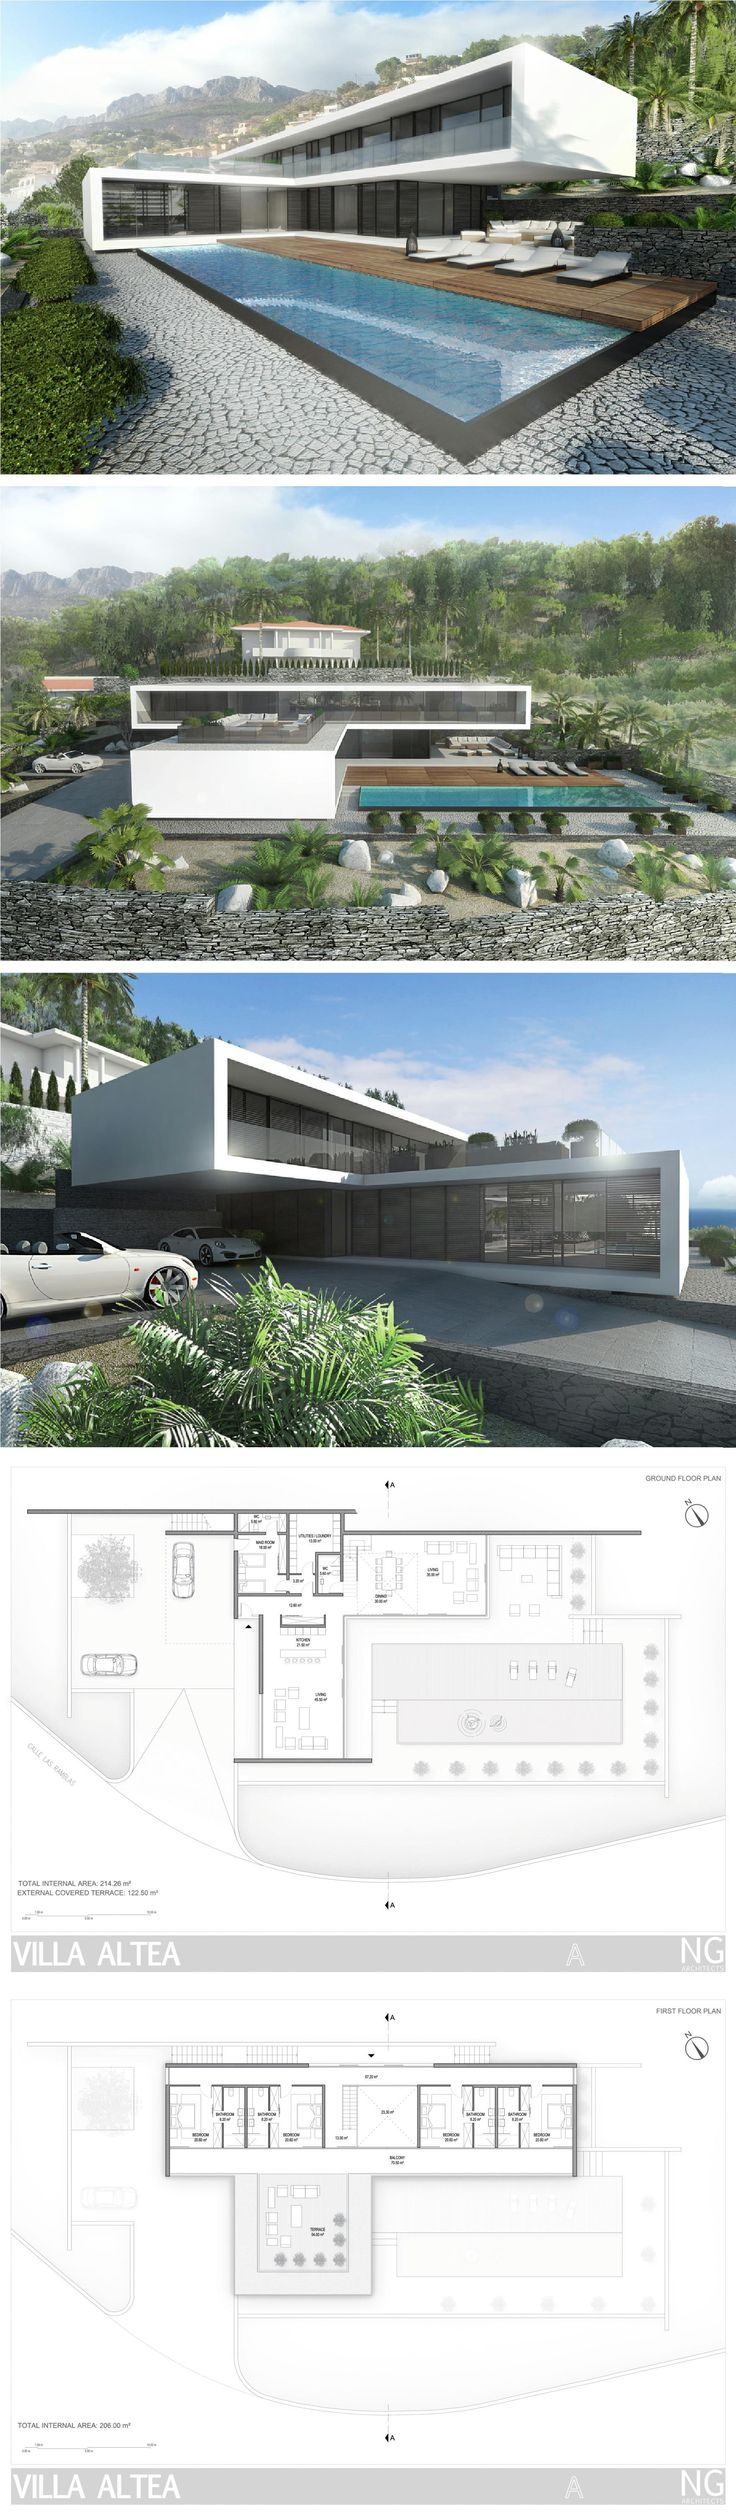 Une villa super moderne | interior design, home decor, villas de luxe. Plus de nouveautés sur http://www.bocadolobo.com/en/news-and-events/